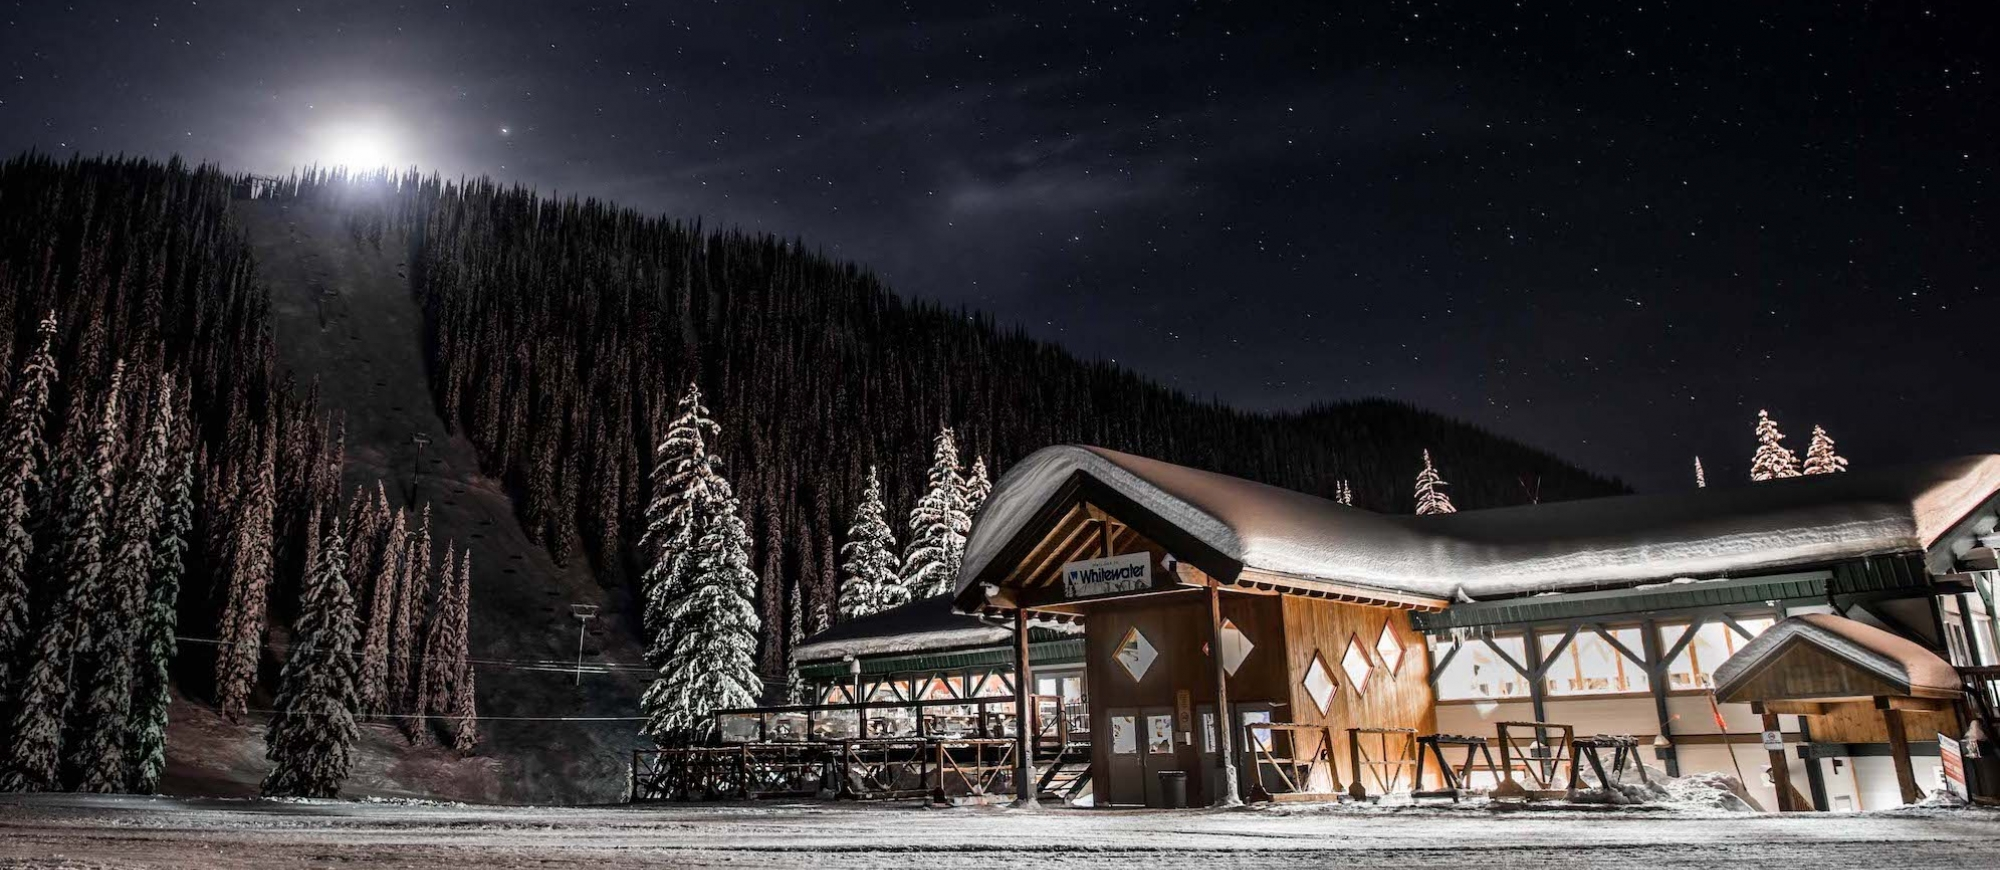 The stars and moonlight light up the Whitewater Ski Resort Lodge at night